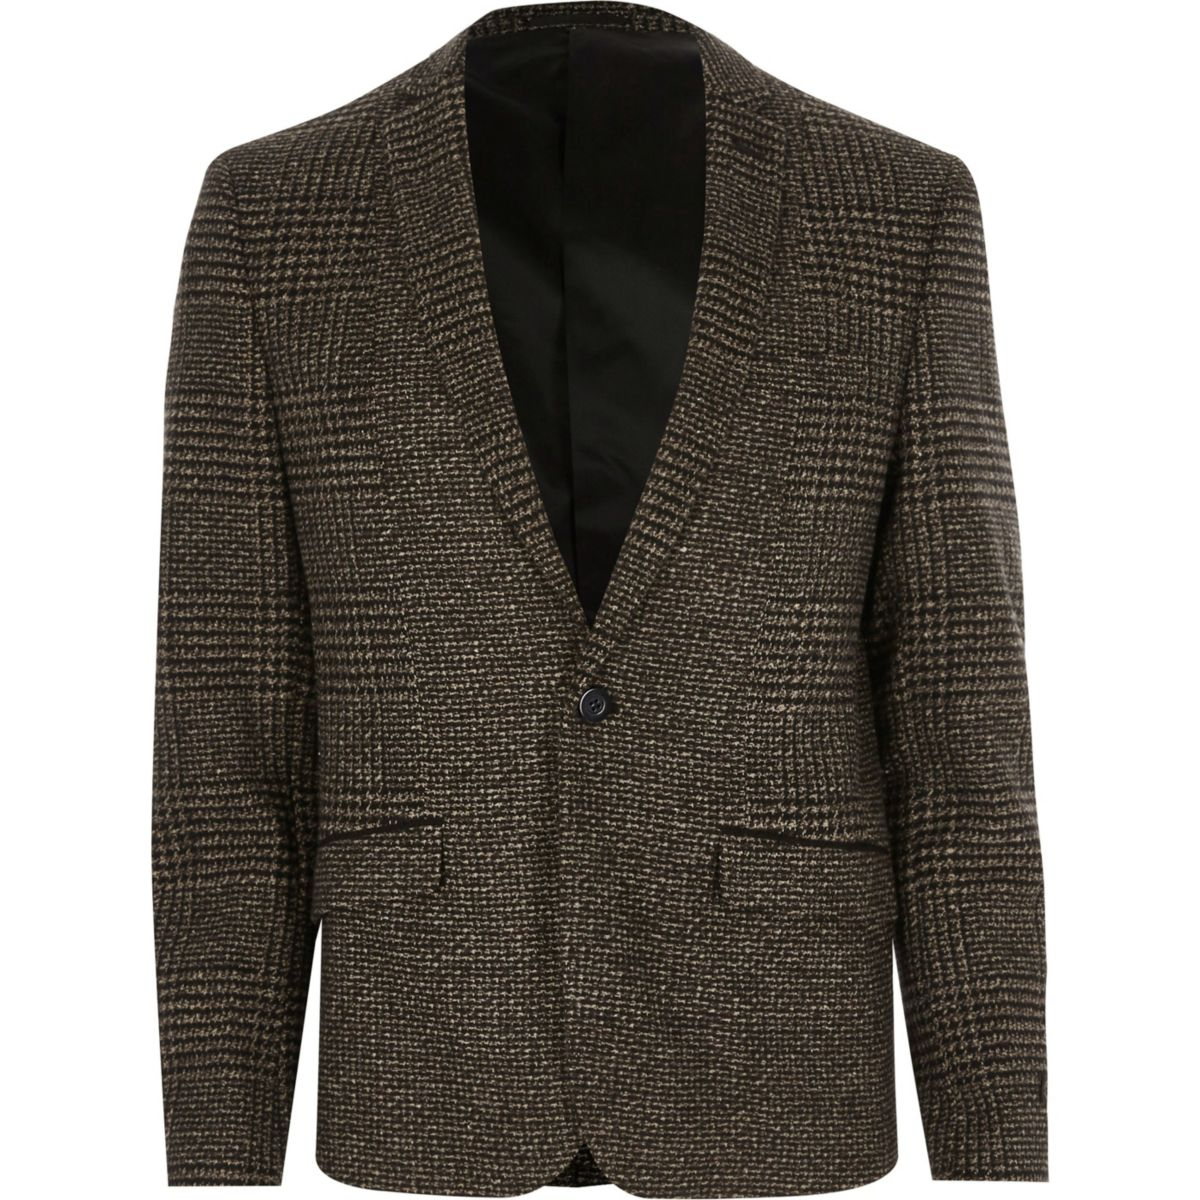 Brown check skinny blazer